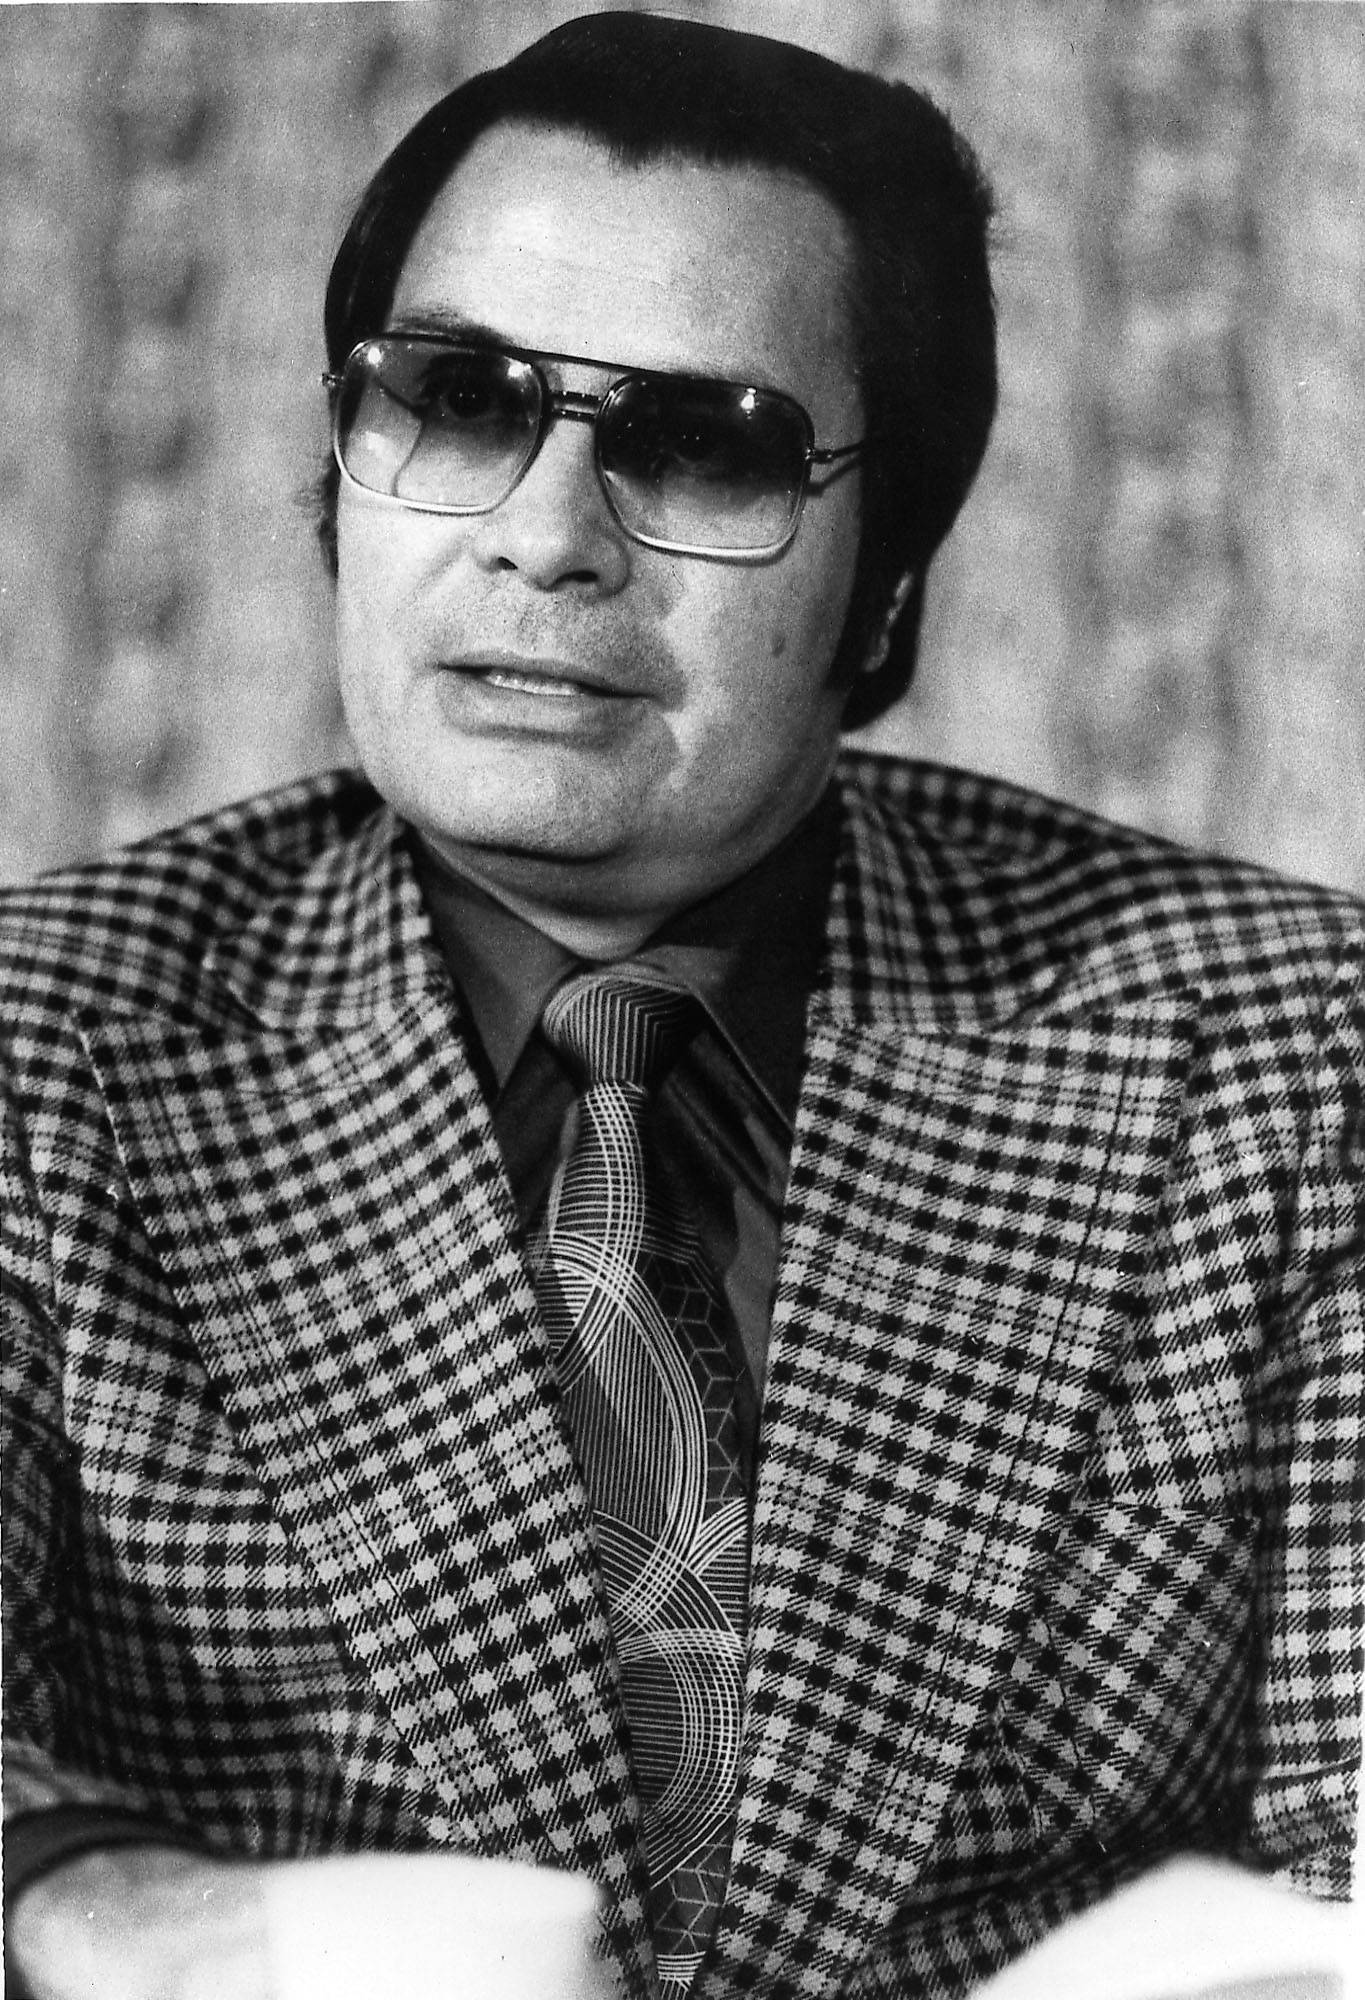 The Rev. Jim Jones, pastor of peoples Temple in San Francisco. The cremated remains of nine victims of a 1978 mass cult suicide-murder in Jonestown, Guyana, have turned up in a former funeral home in Delaware, officials said Thursday, Aug. 7, 2014.